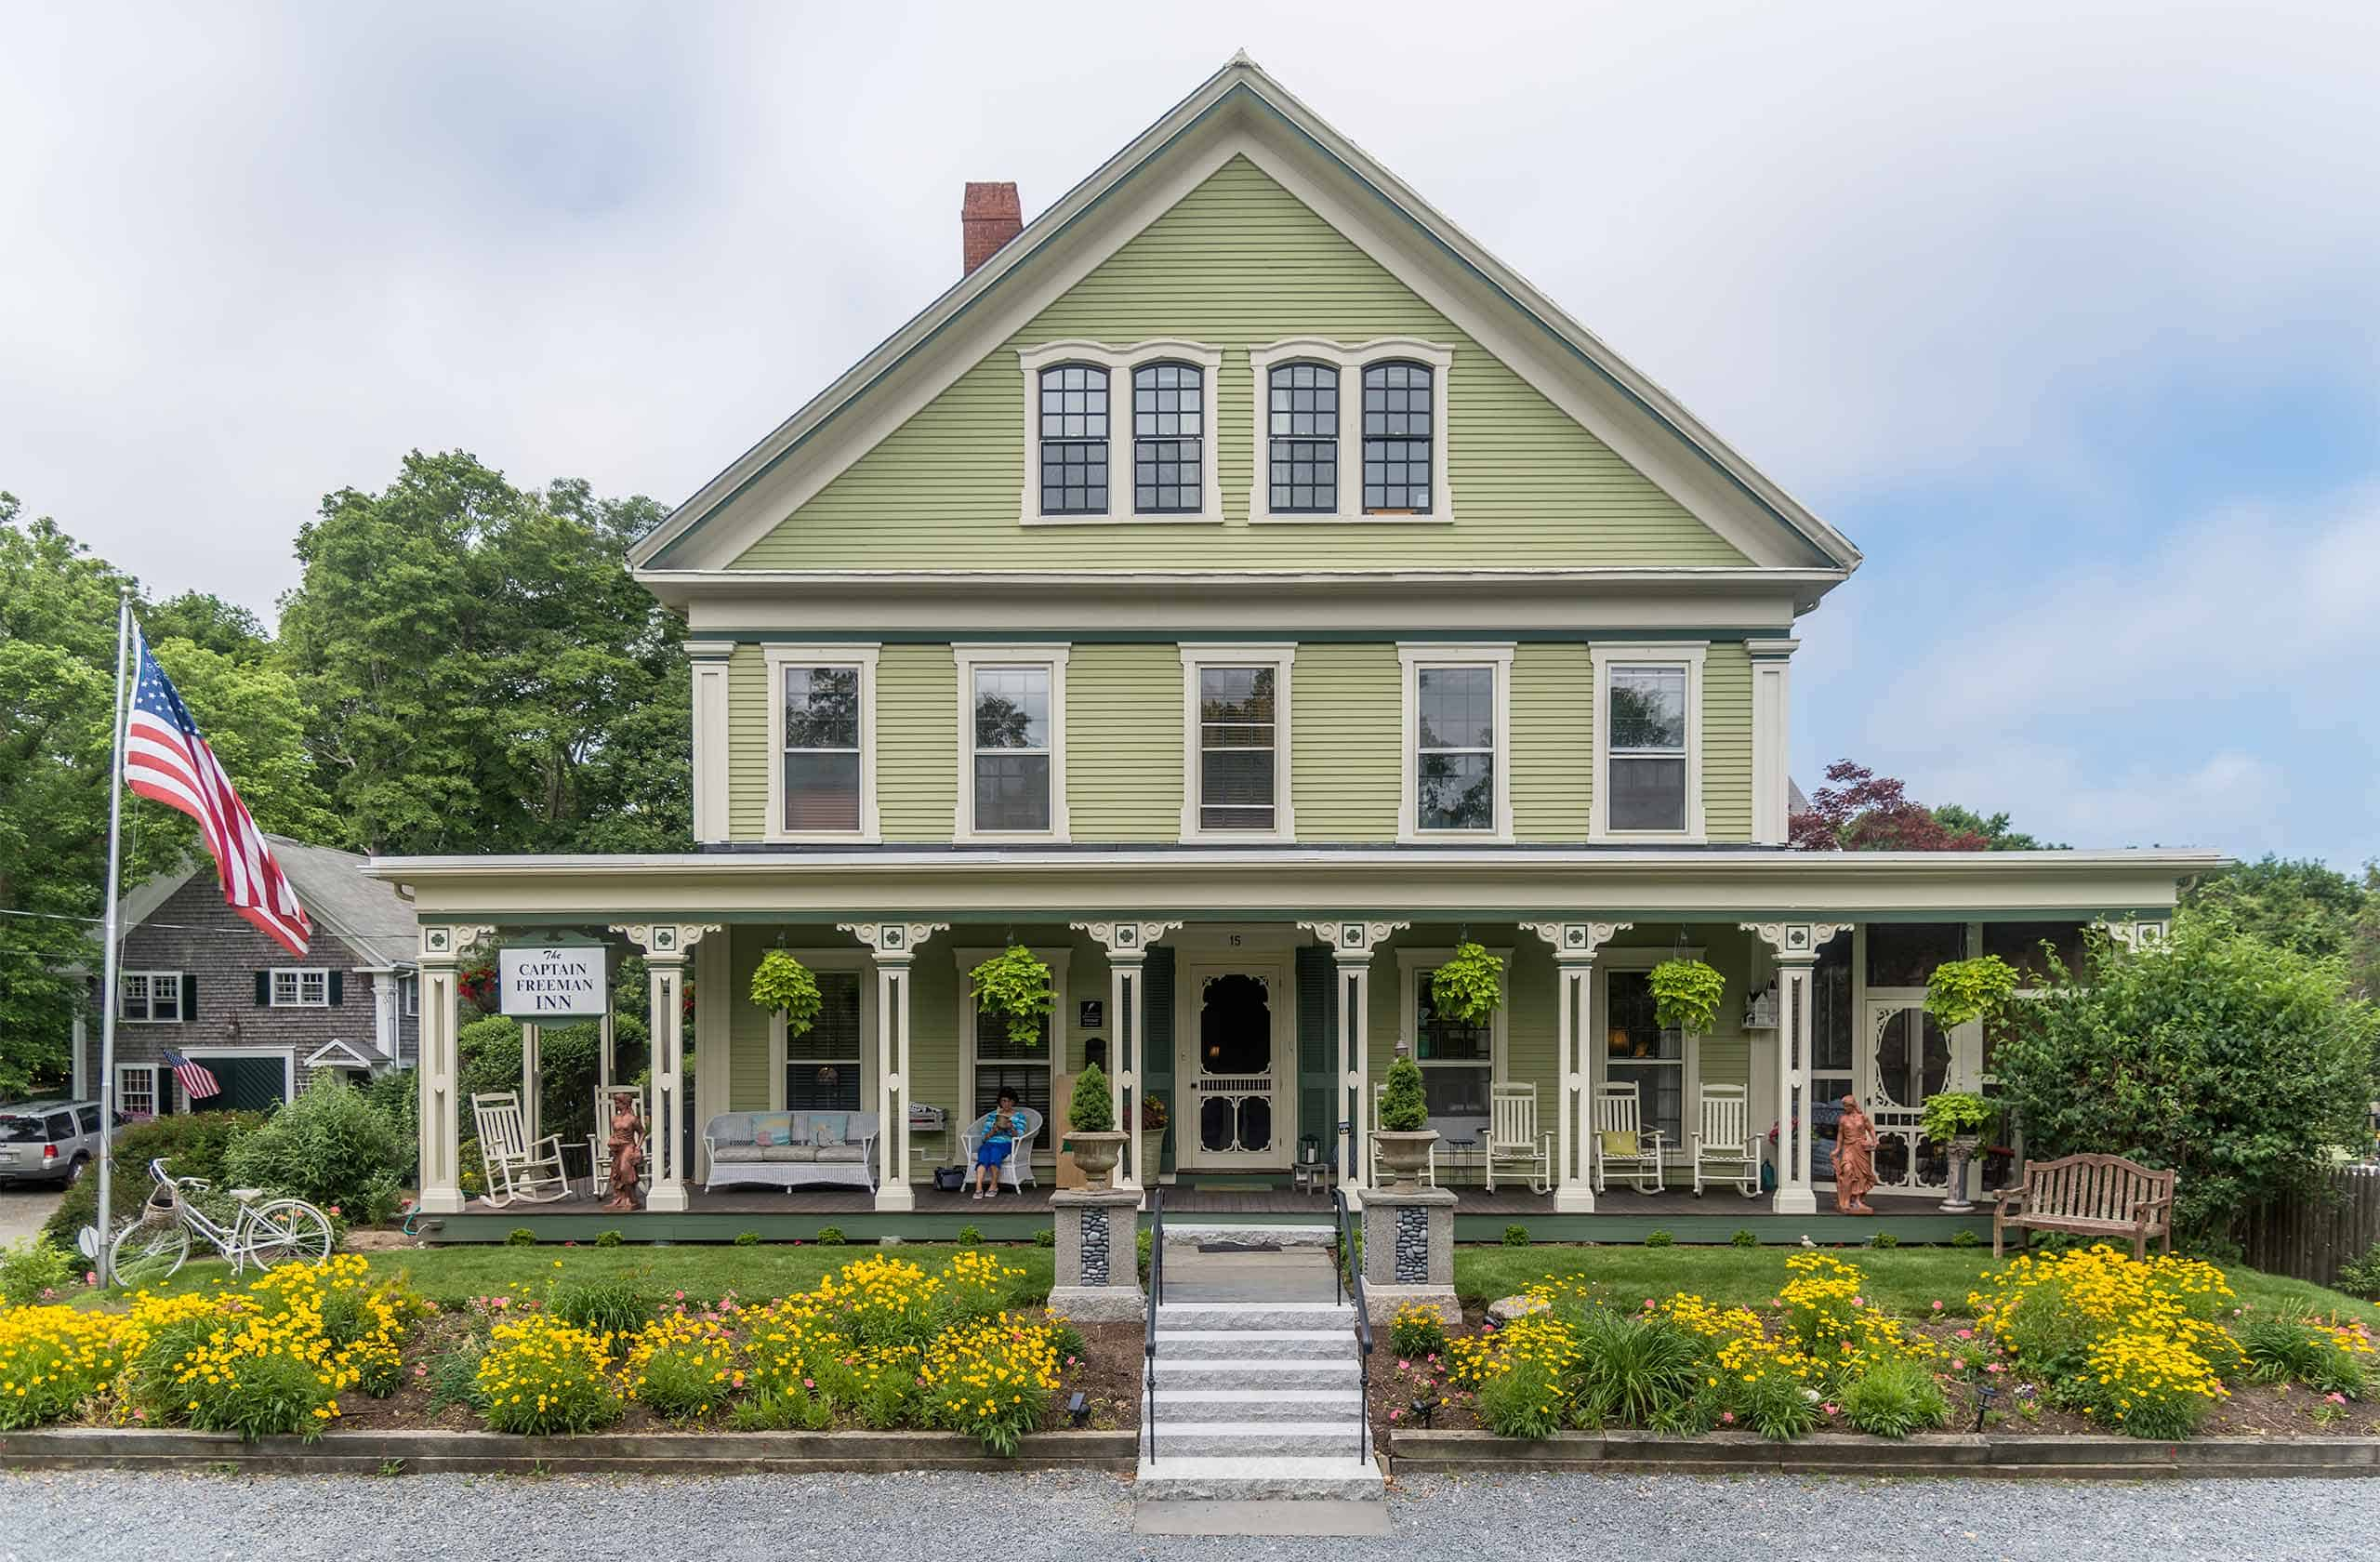 The Captain Freeman Inn from the front showing the patio deck on ground floor, 5 windows on second floor, and two large windows on the third floor. Gardens are in bloom with an American flag waving.